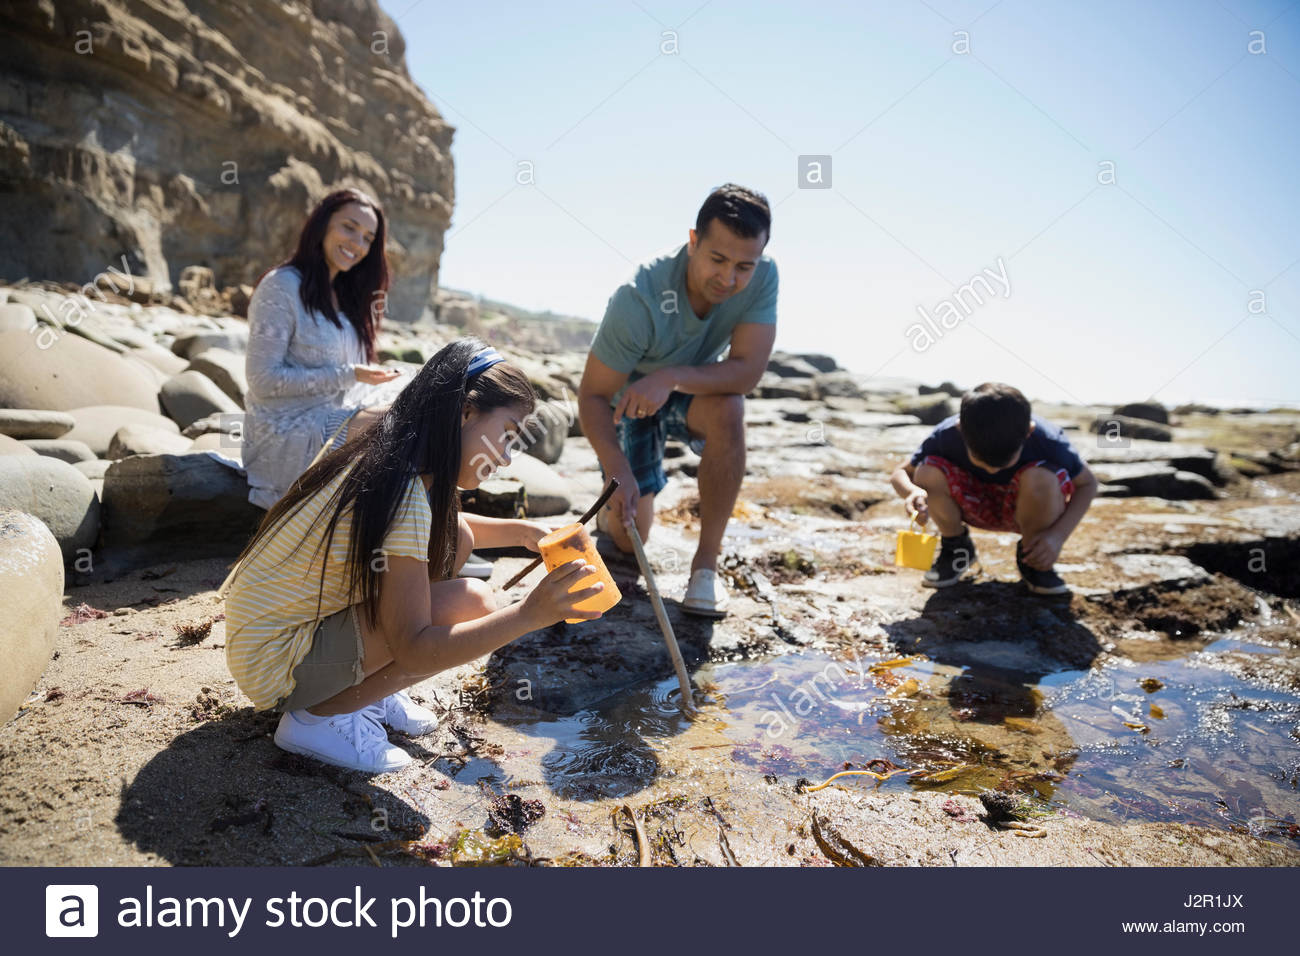 Latino family at tide pool on sunny craggy beach - Stock Image